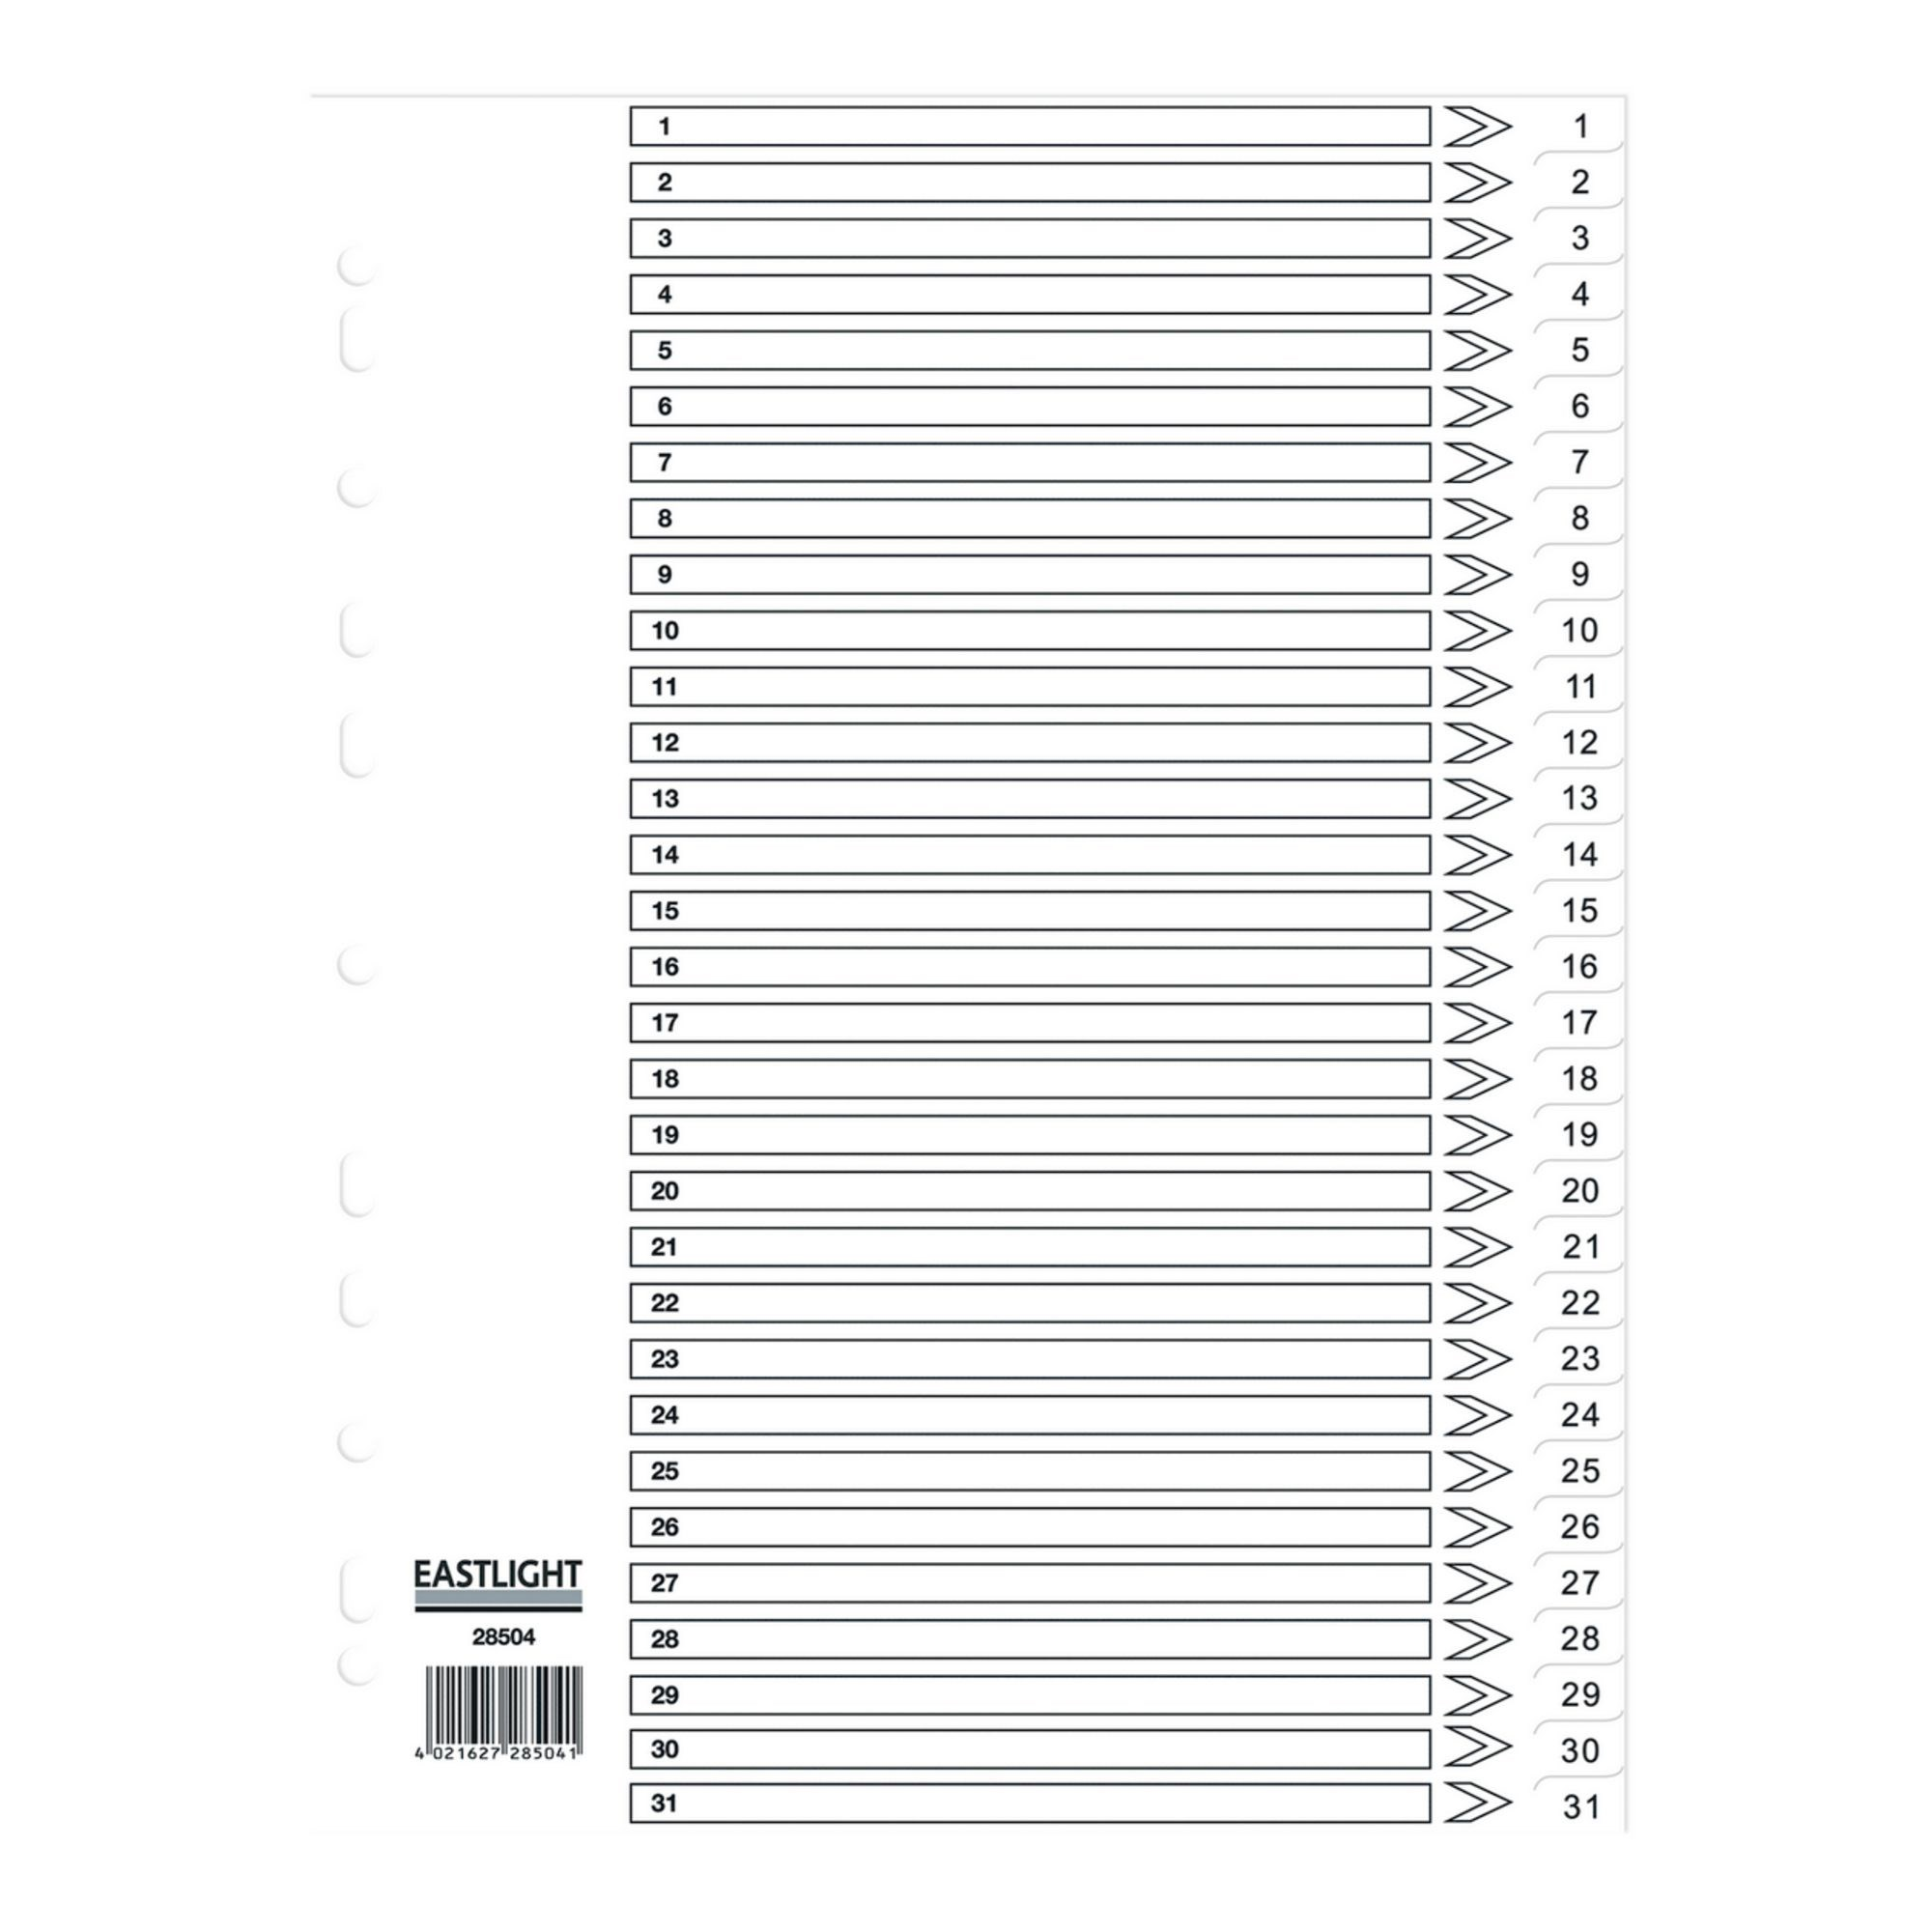 Concord Dividers White Polypropolyne 1-31 (Pack of 10)